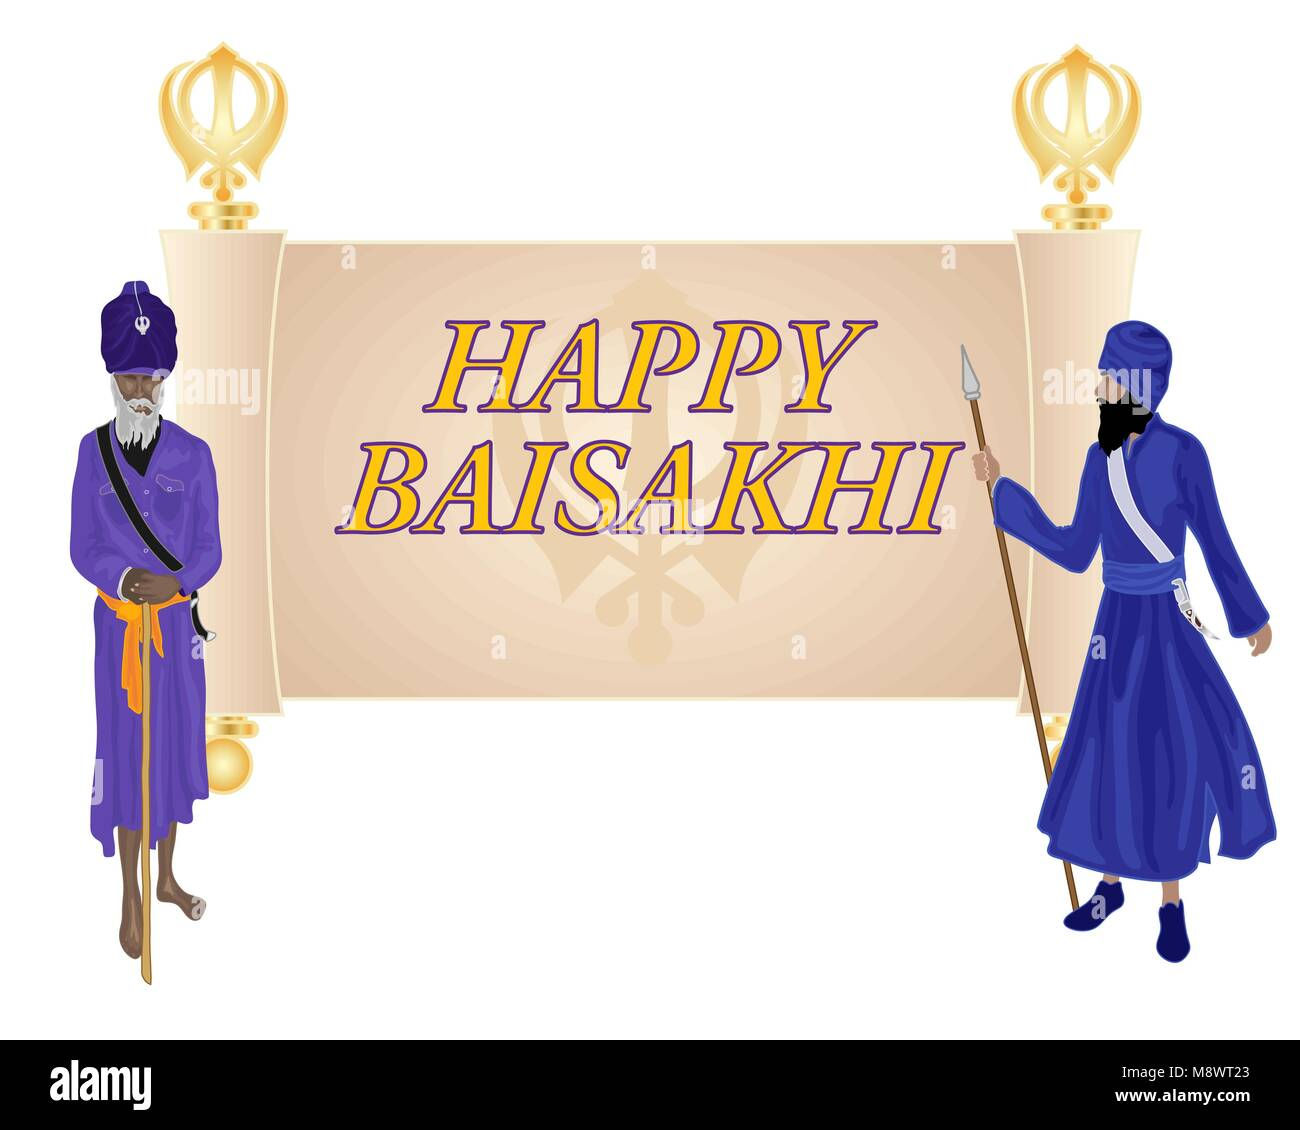 a vector illustration in eps 10 format of a Baisakhi greeting card for the Sikh religious festival with an old parchment - Stock Vector